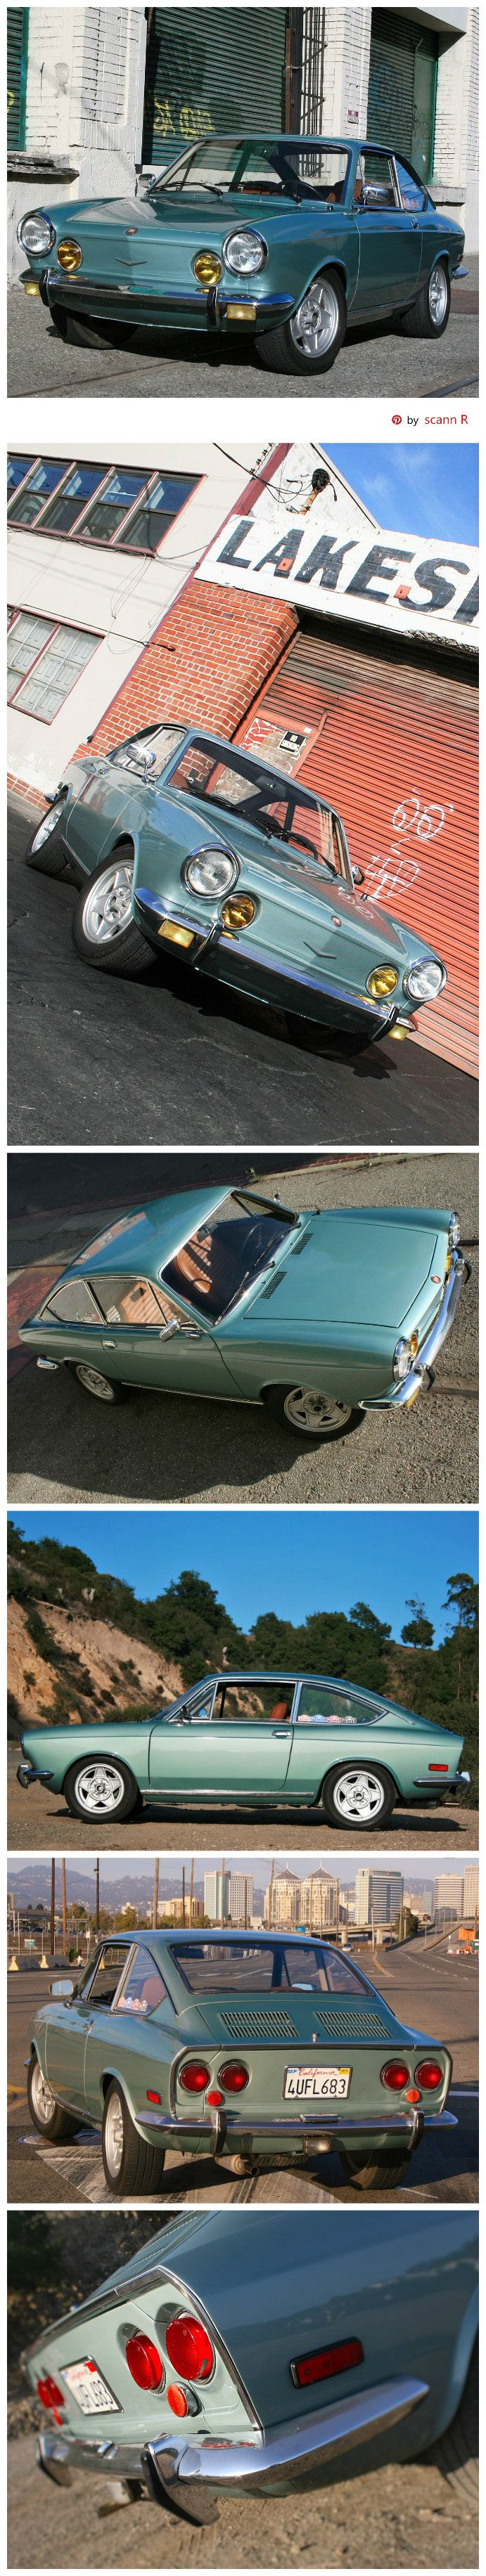 1971 Fiat 850 Sport Coupe (Series II) exterior | Pin made by scann R